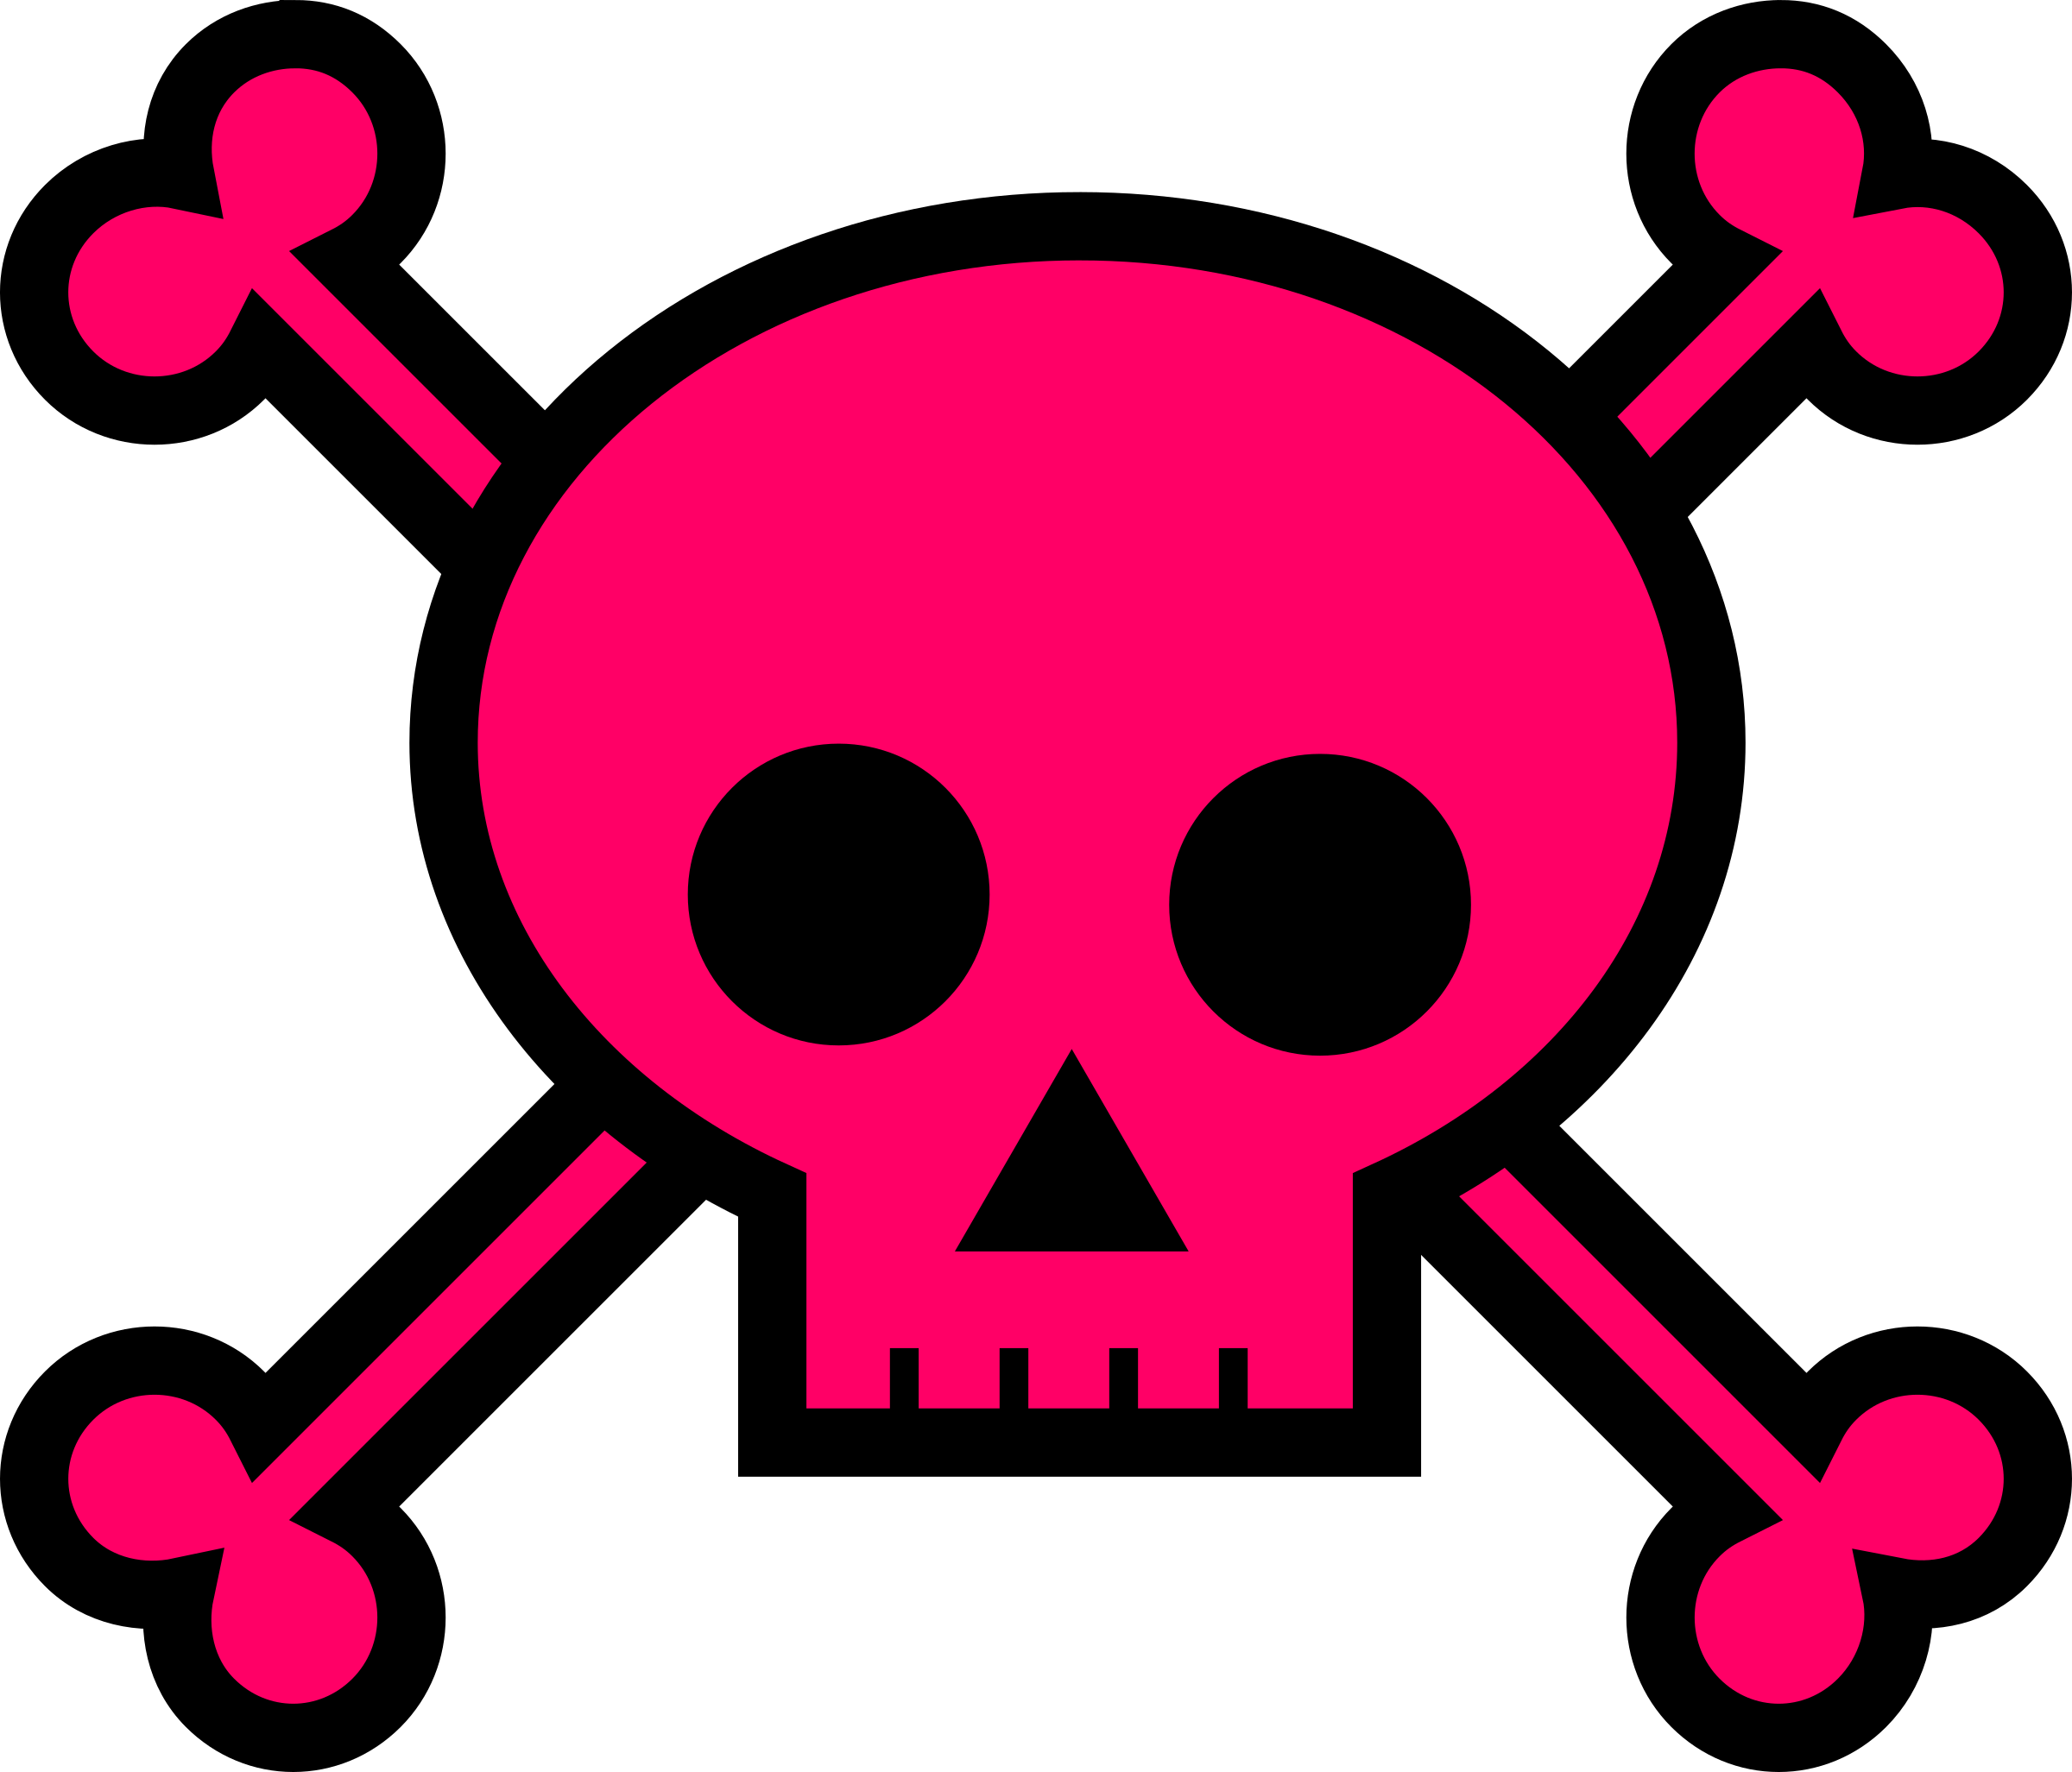 Girly clipart spider. Skull and crossbones large